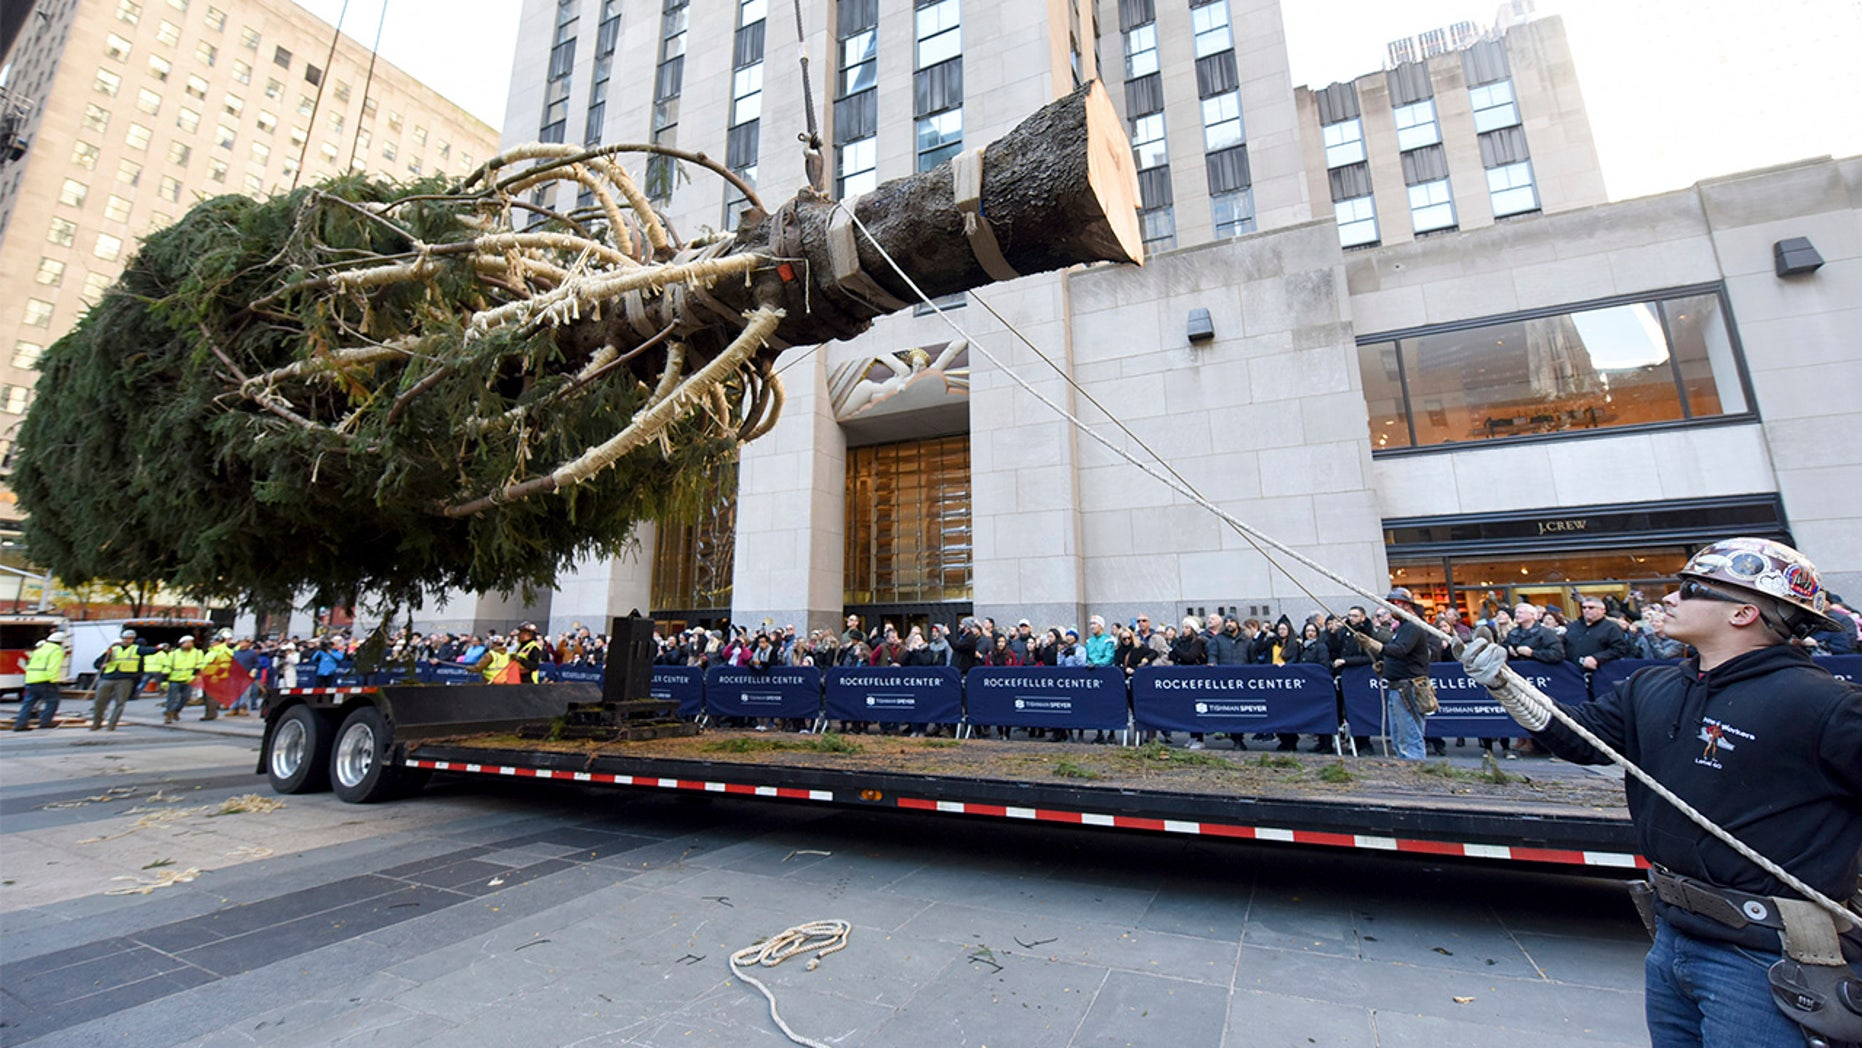 New York City\'s Rockefeller Center Christmas tree goes up | Fox News